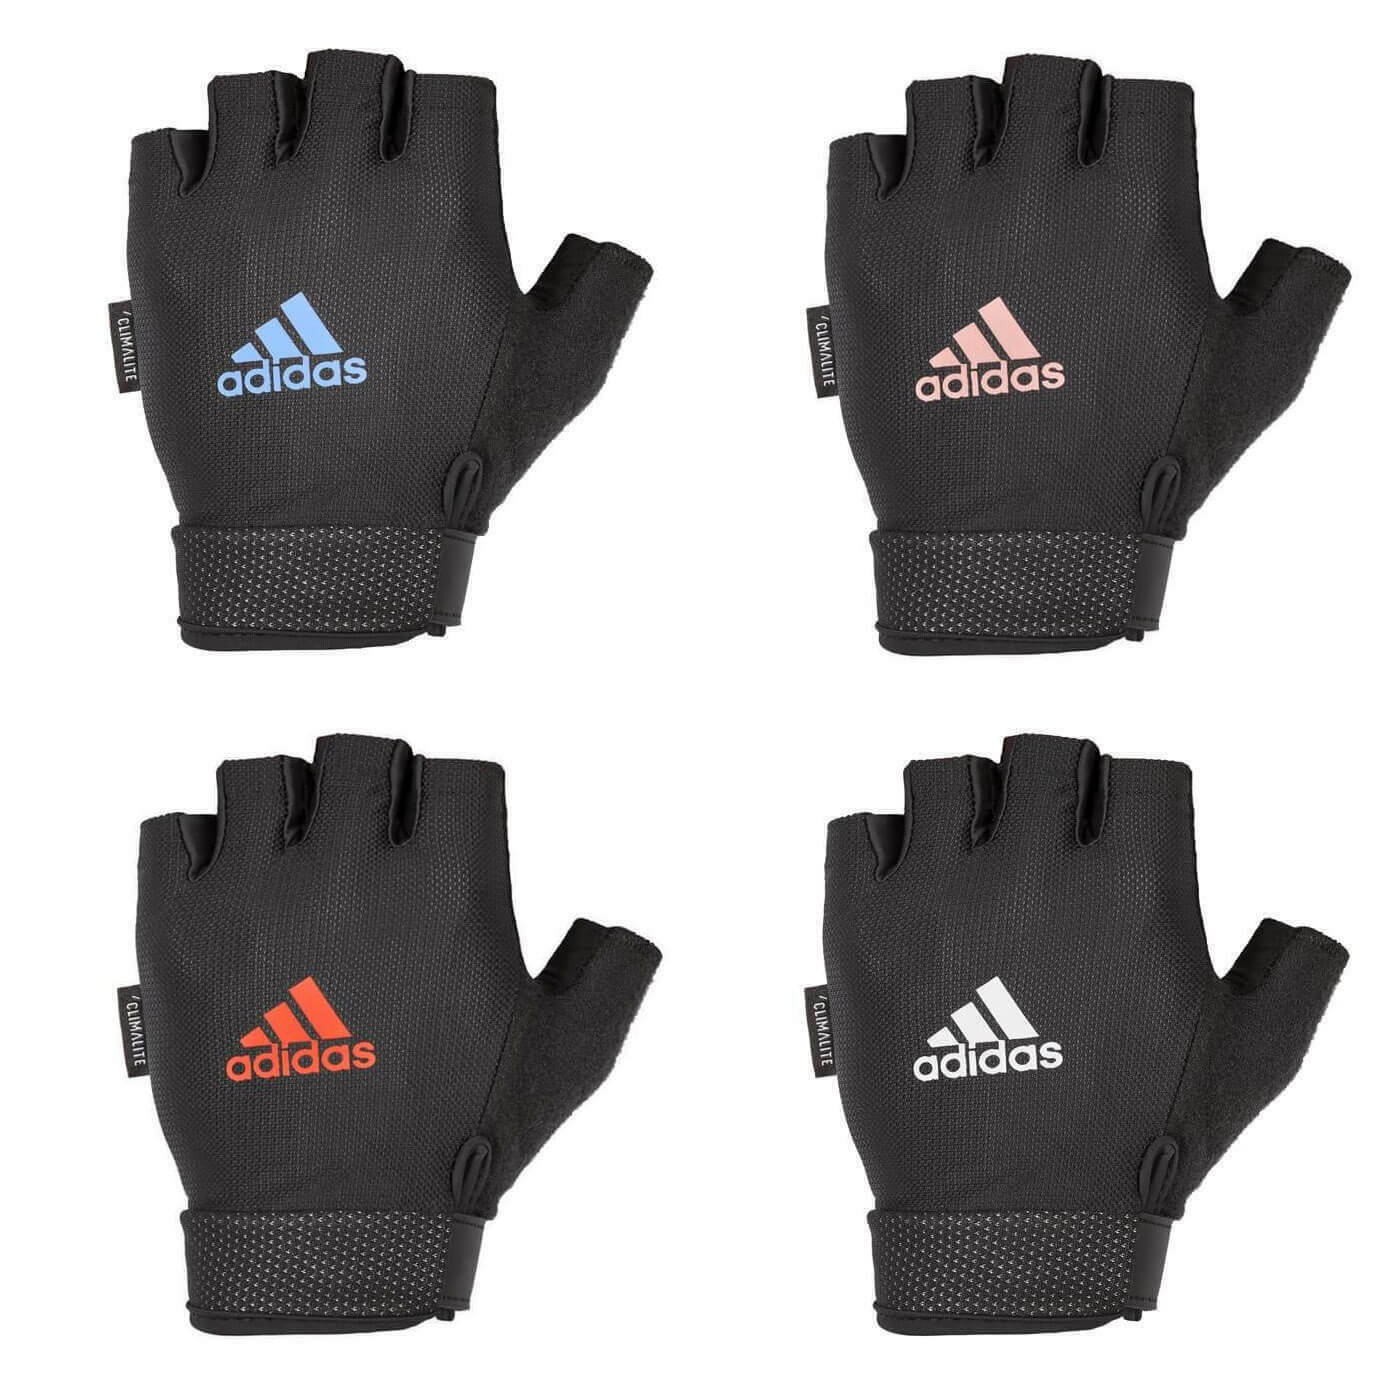 Details about Adidas Adjustable Essential Gloves Weight Lifting Fitness Training Gym Workout